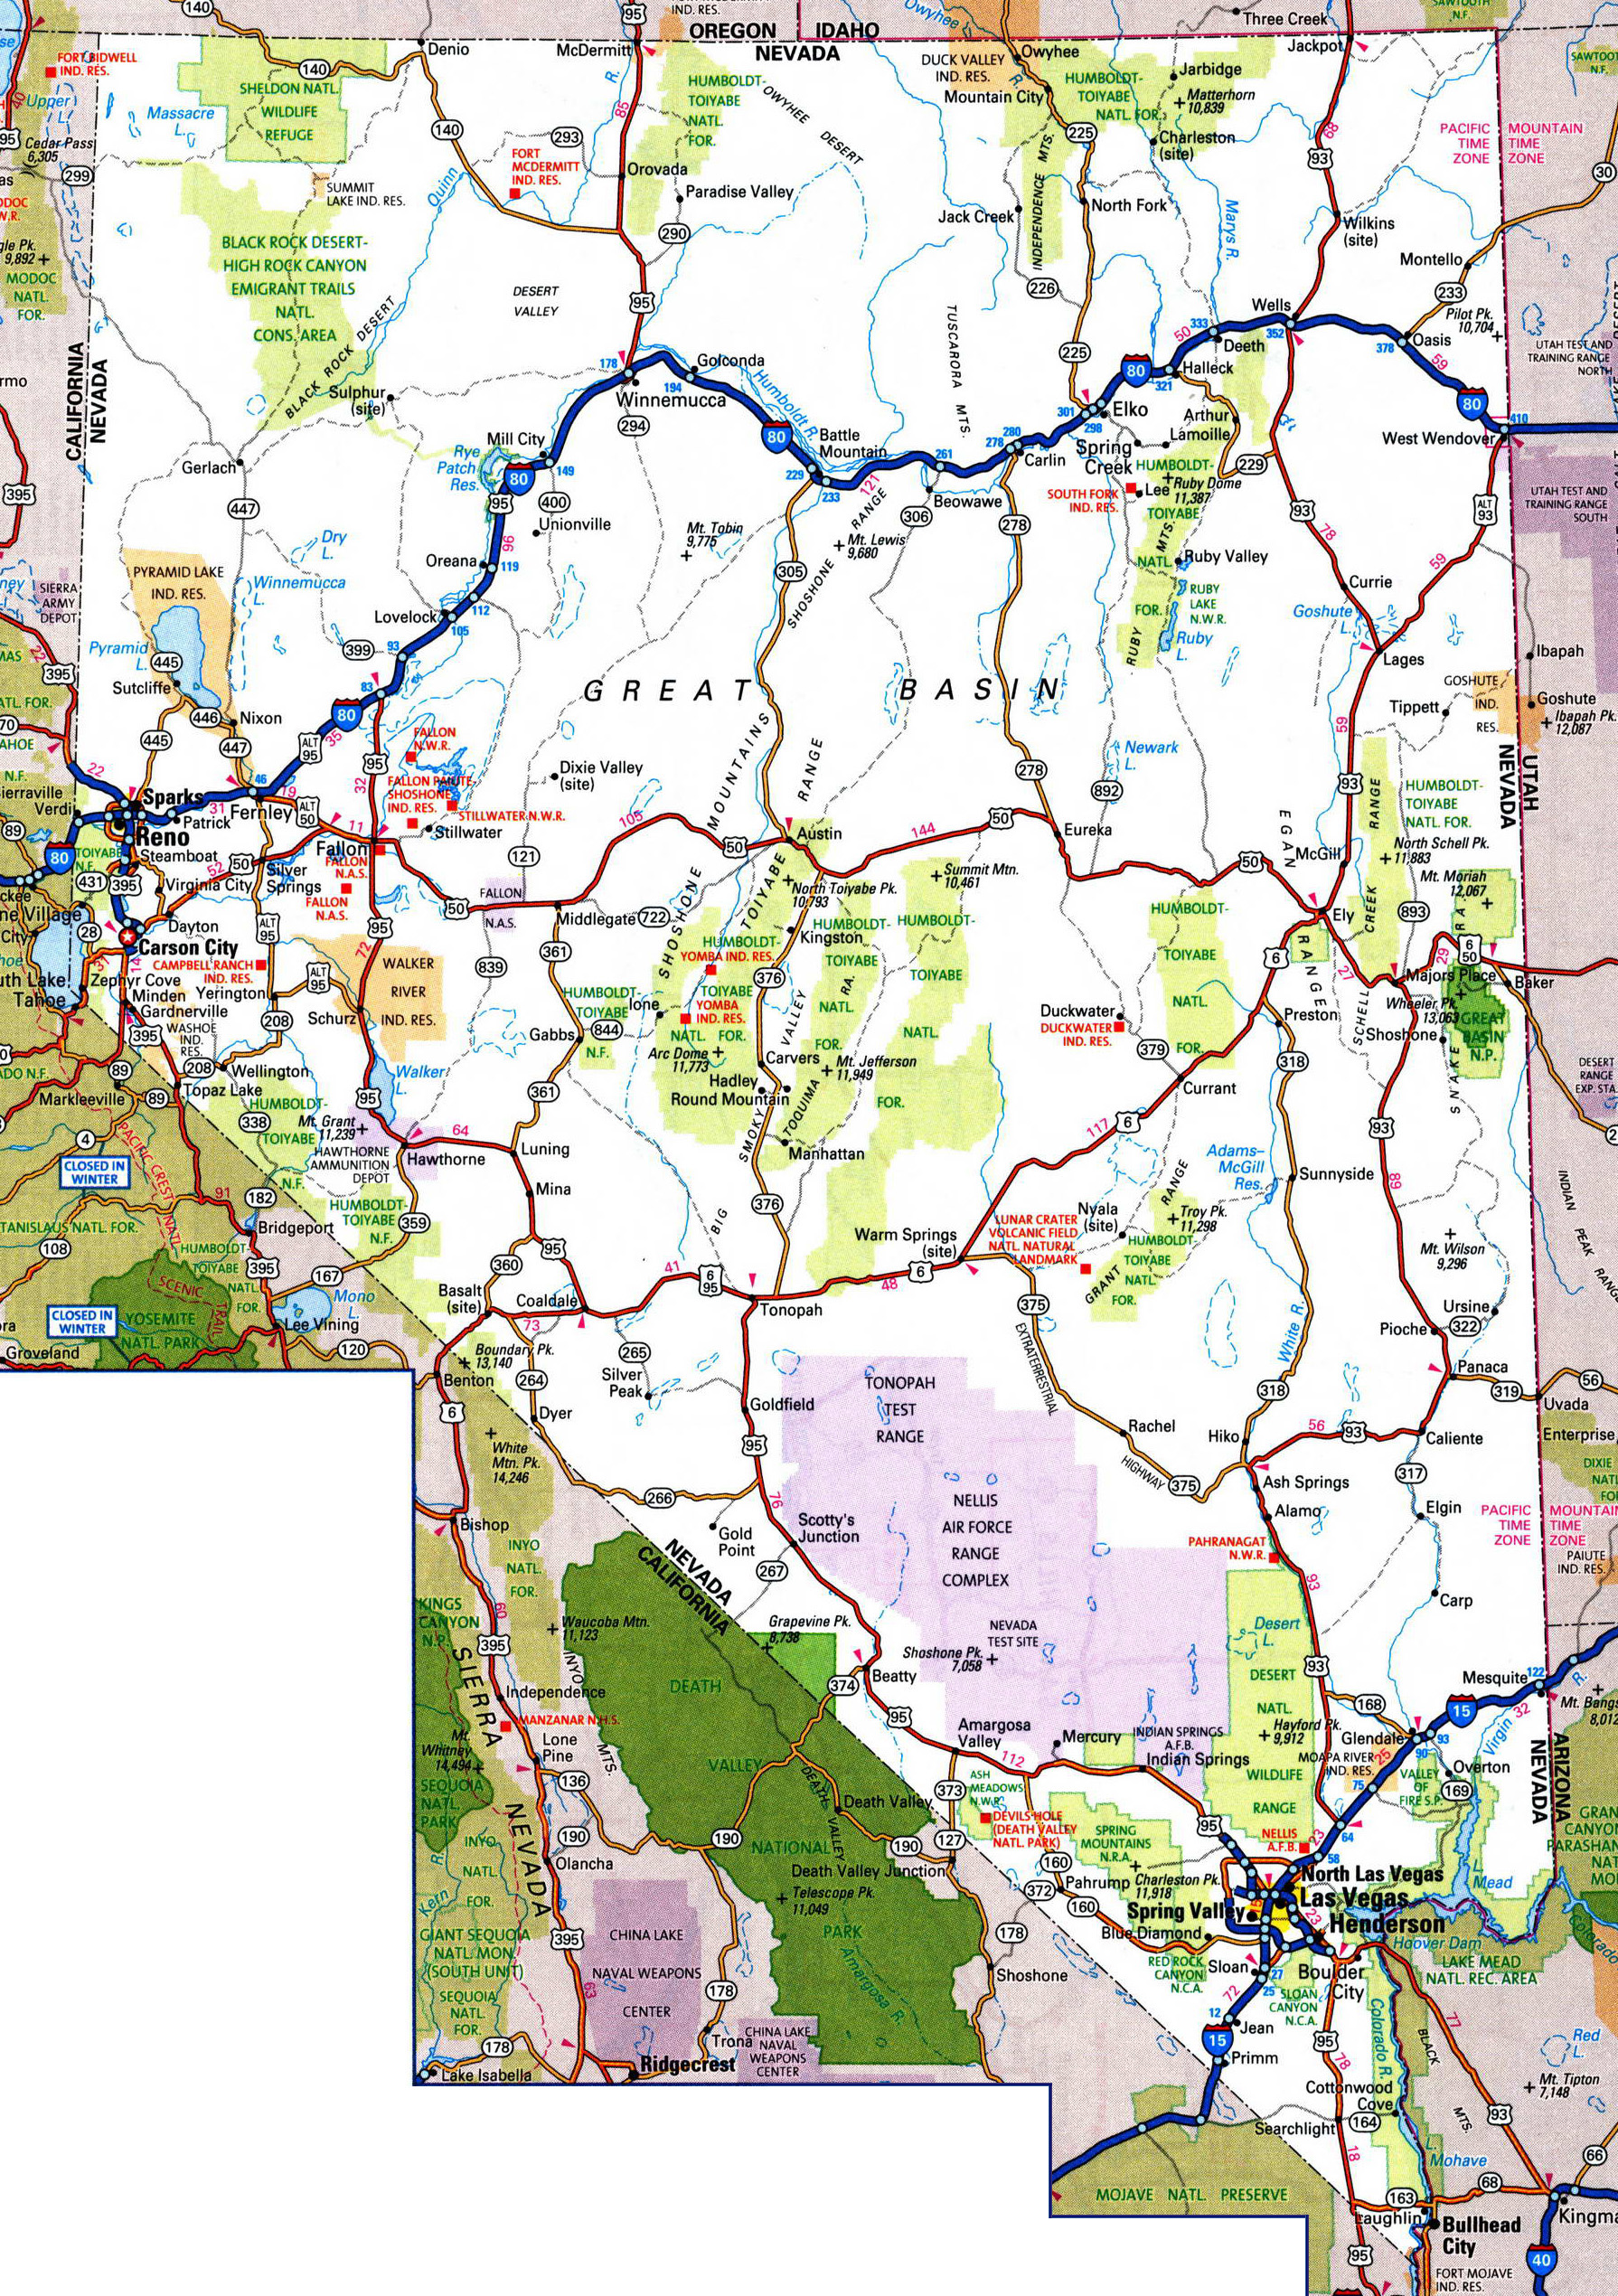 Large Detailed Roads And Highways Map Of Nevada State With Cities - Detailed usa map with states and cities